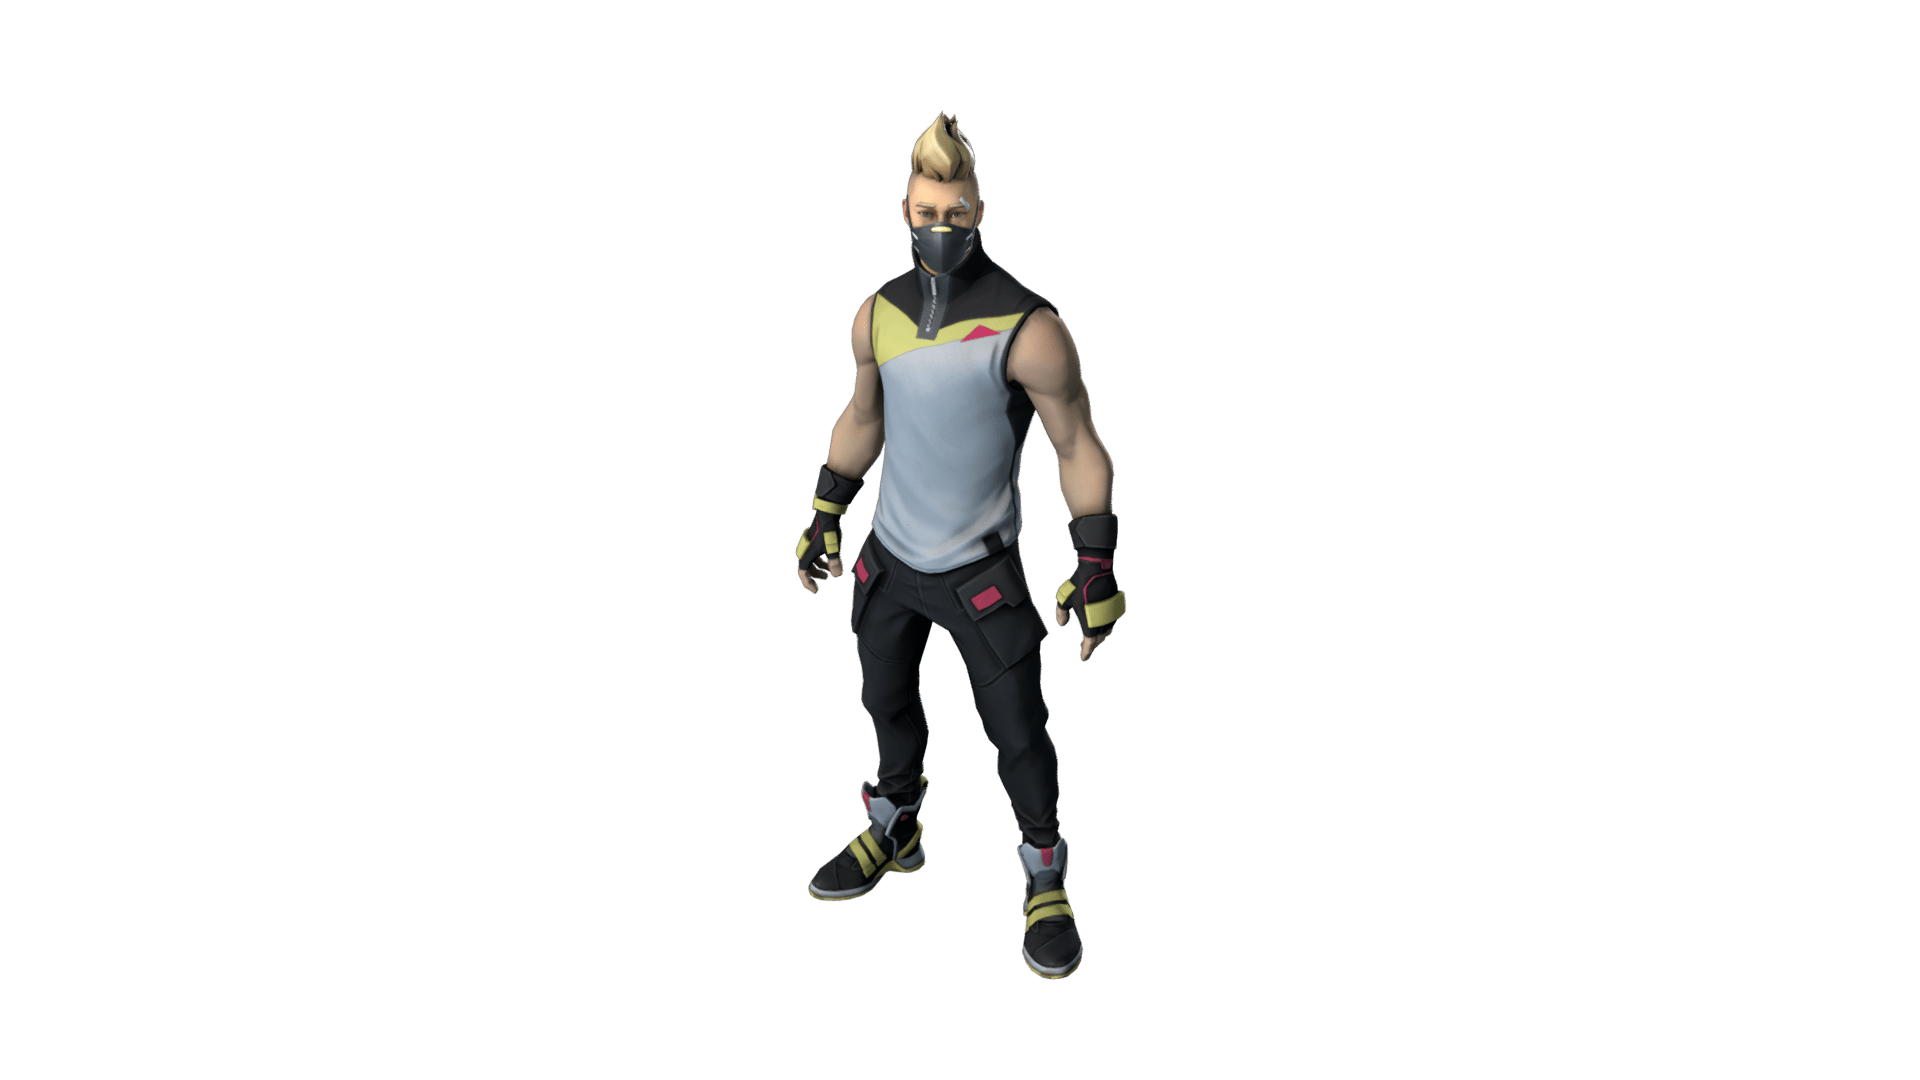 drift fortnite outfit skin how upgrade stages details #27066